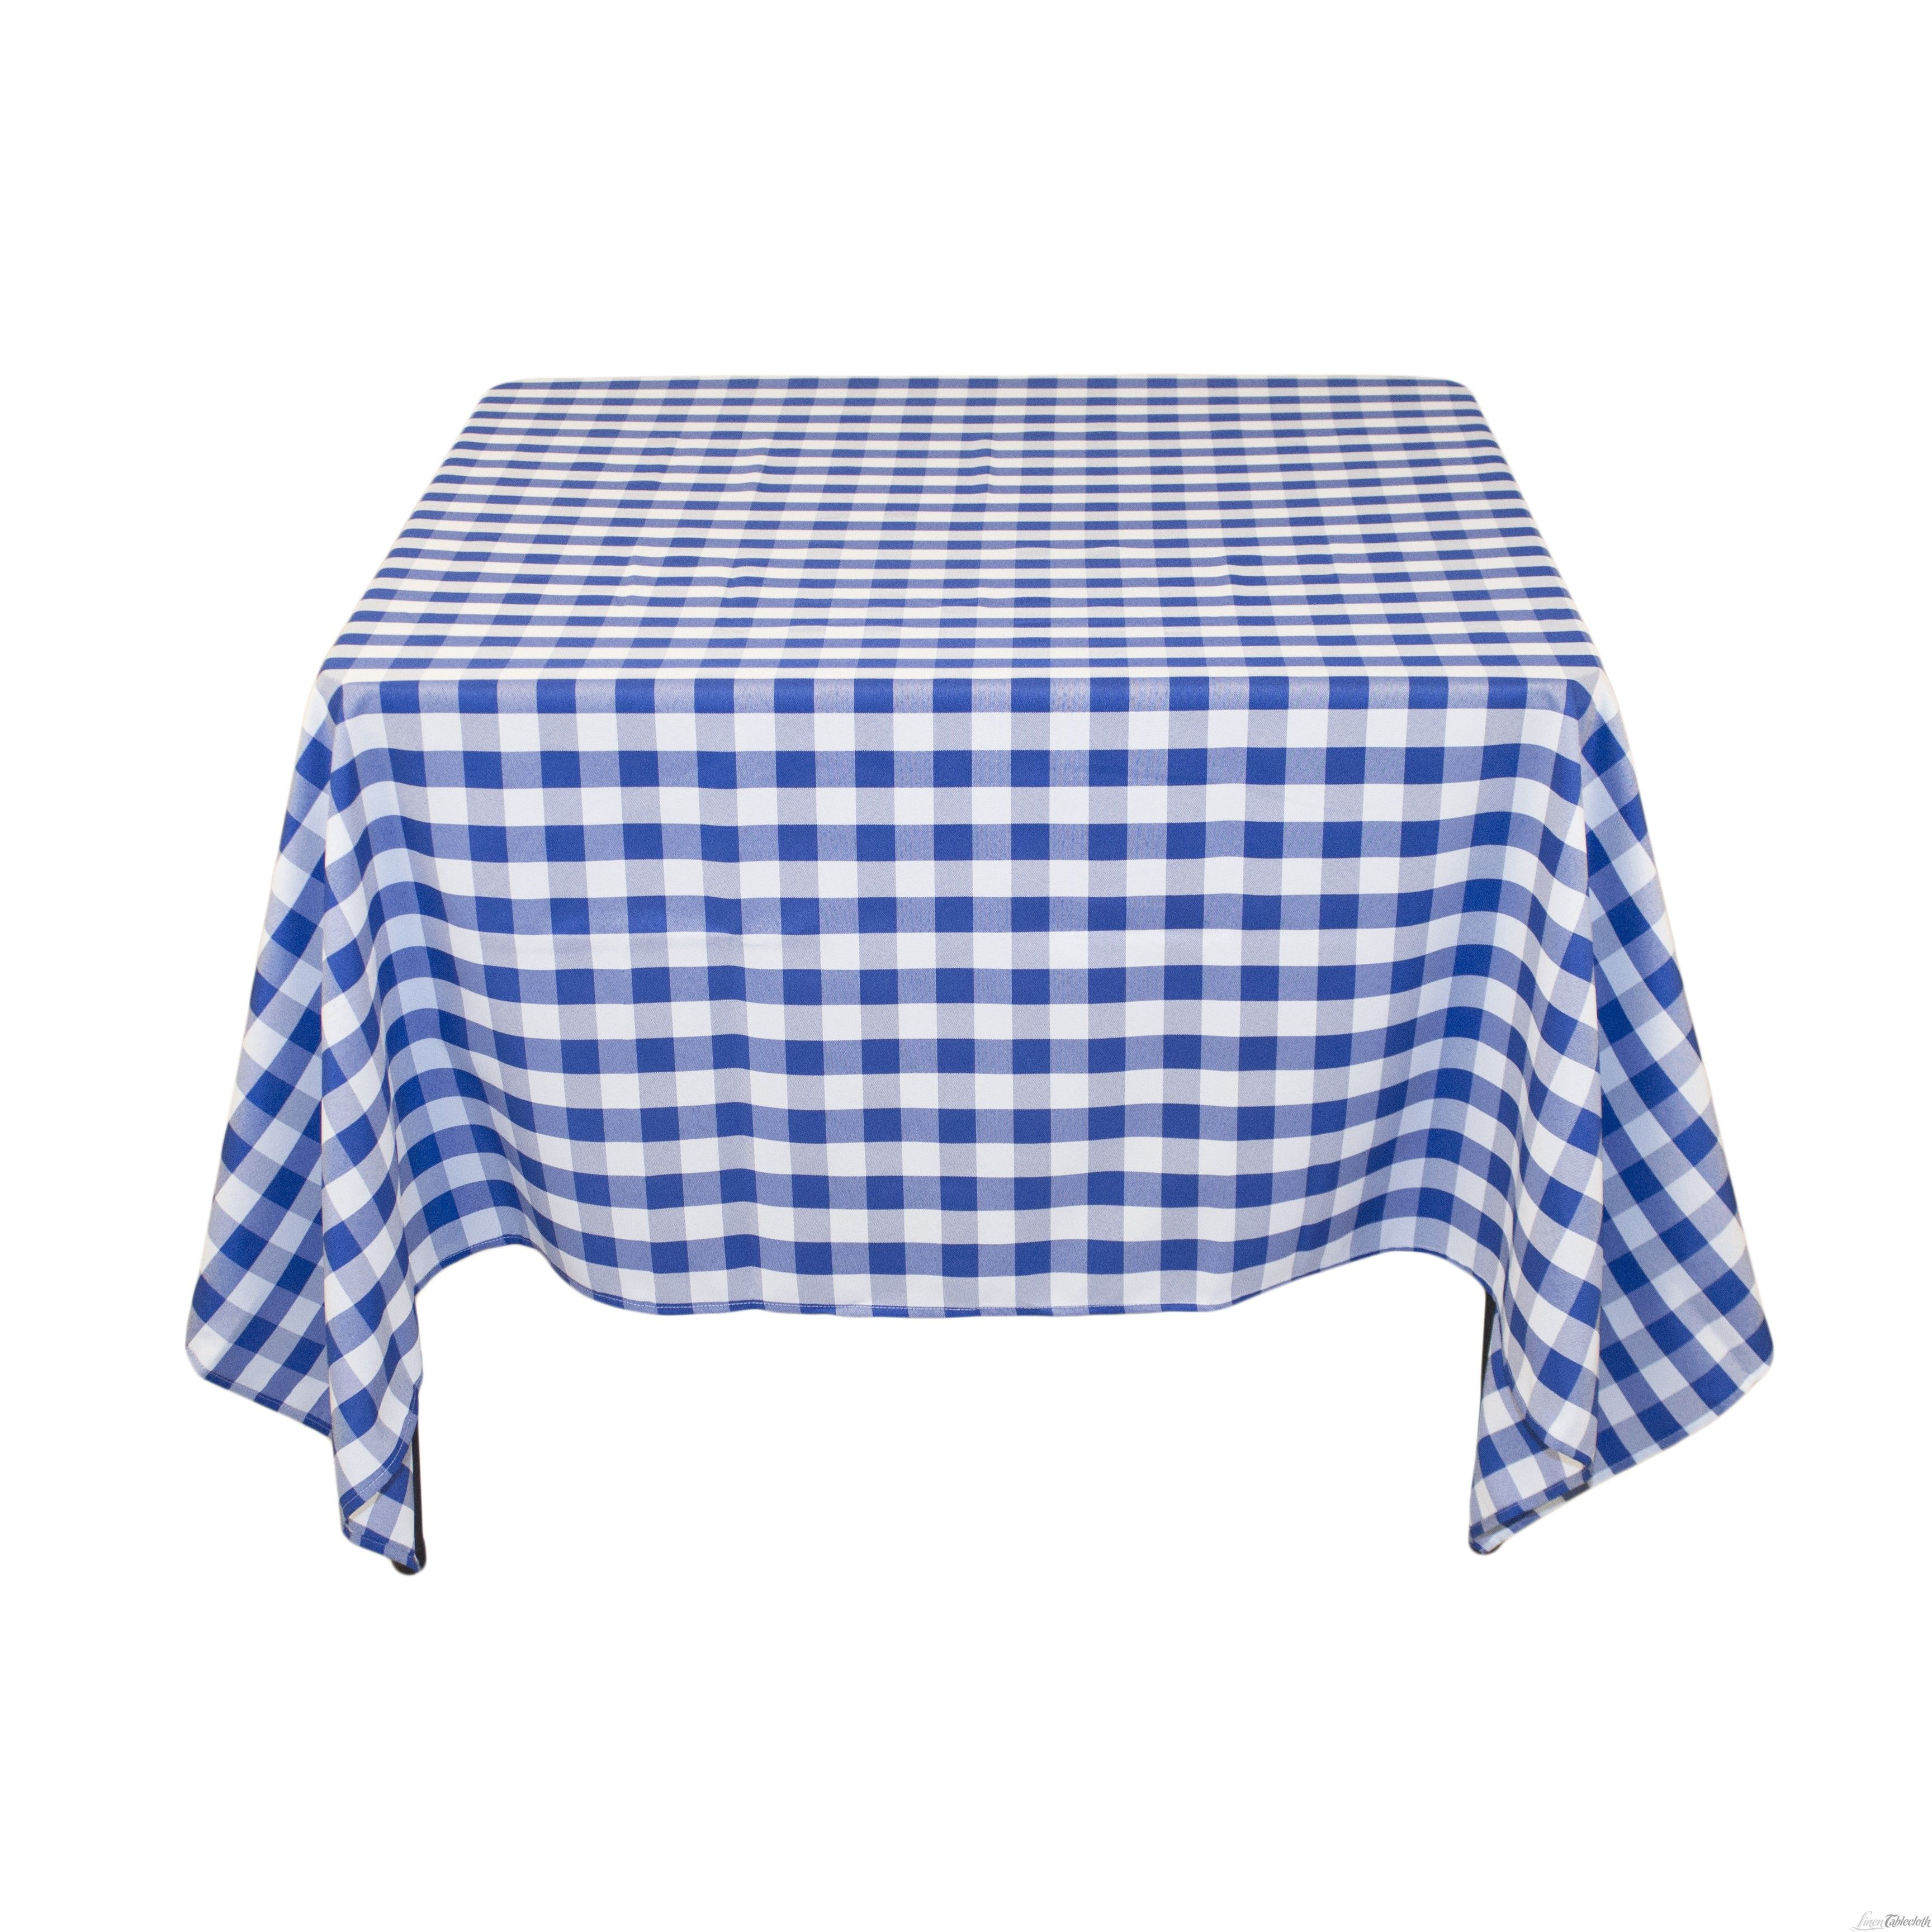 Perfect Buy 70 Inch Square, Blue U0026 White Checkered, Polyester Tablecloths. These  Table Linens